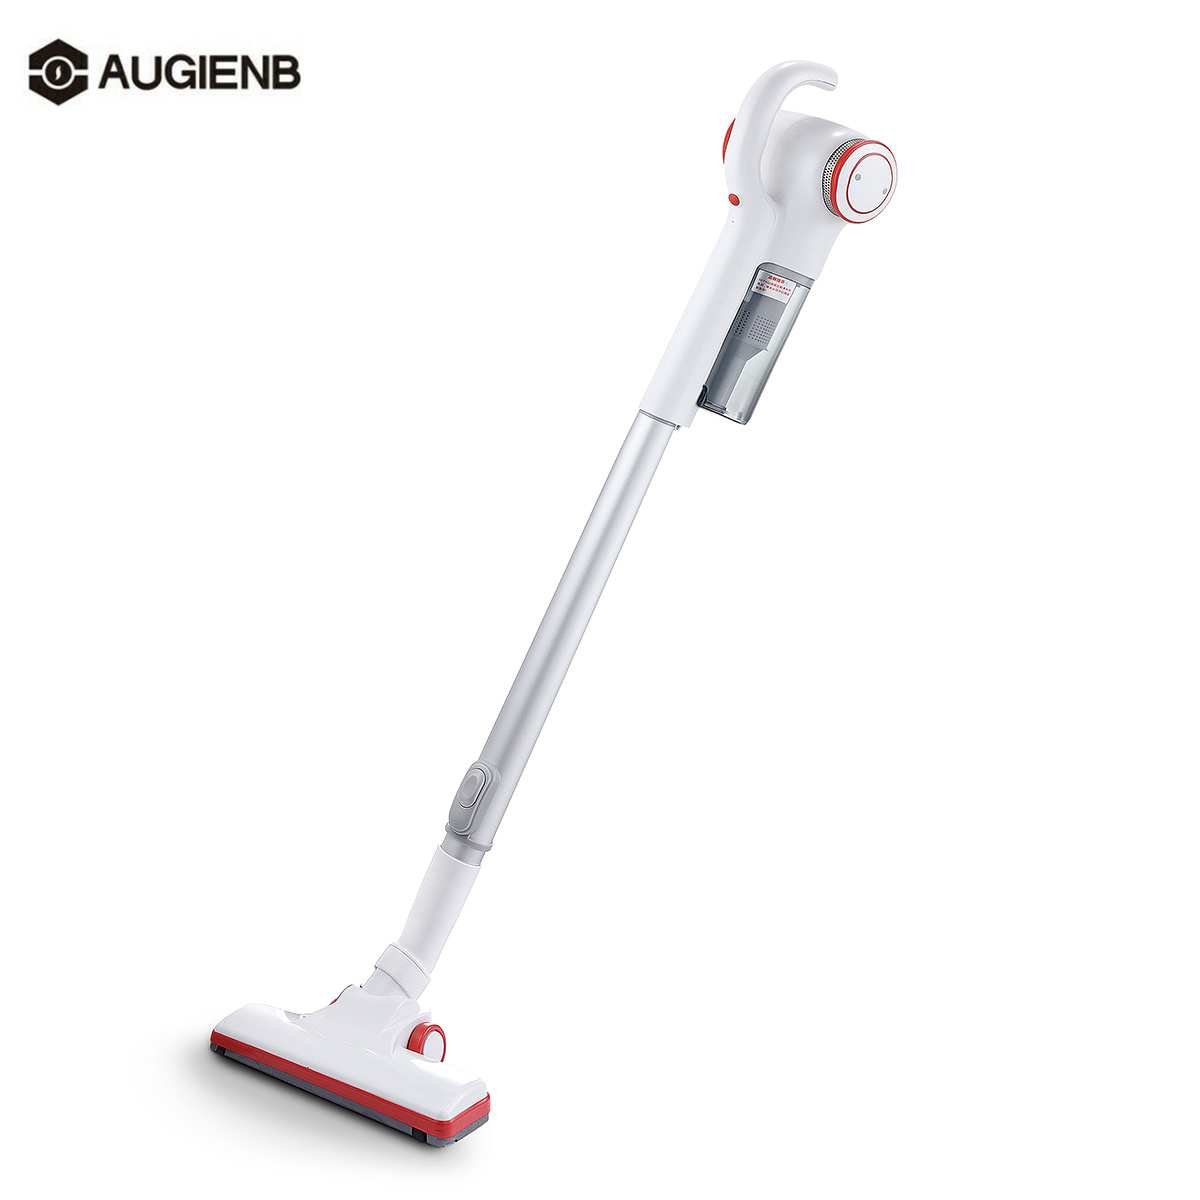 10000Pa 2 In 1 Handheld Cordless Vacuum Cleaner 150W 3000mAh Strong Suction Dust Collector Wireless Stick Cleaner For Home Car